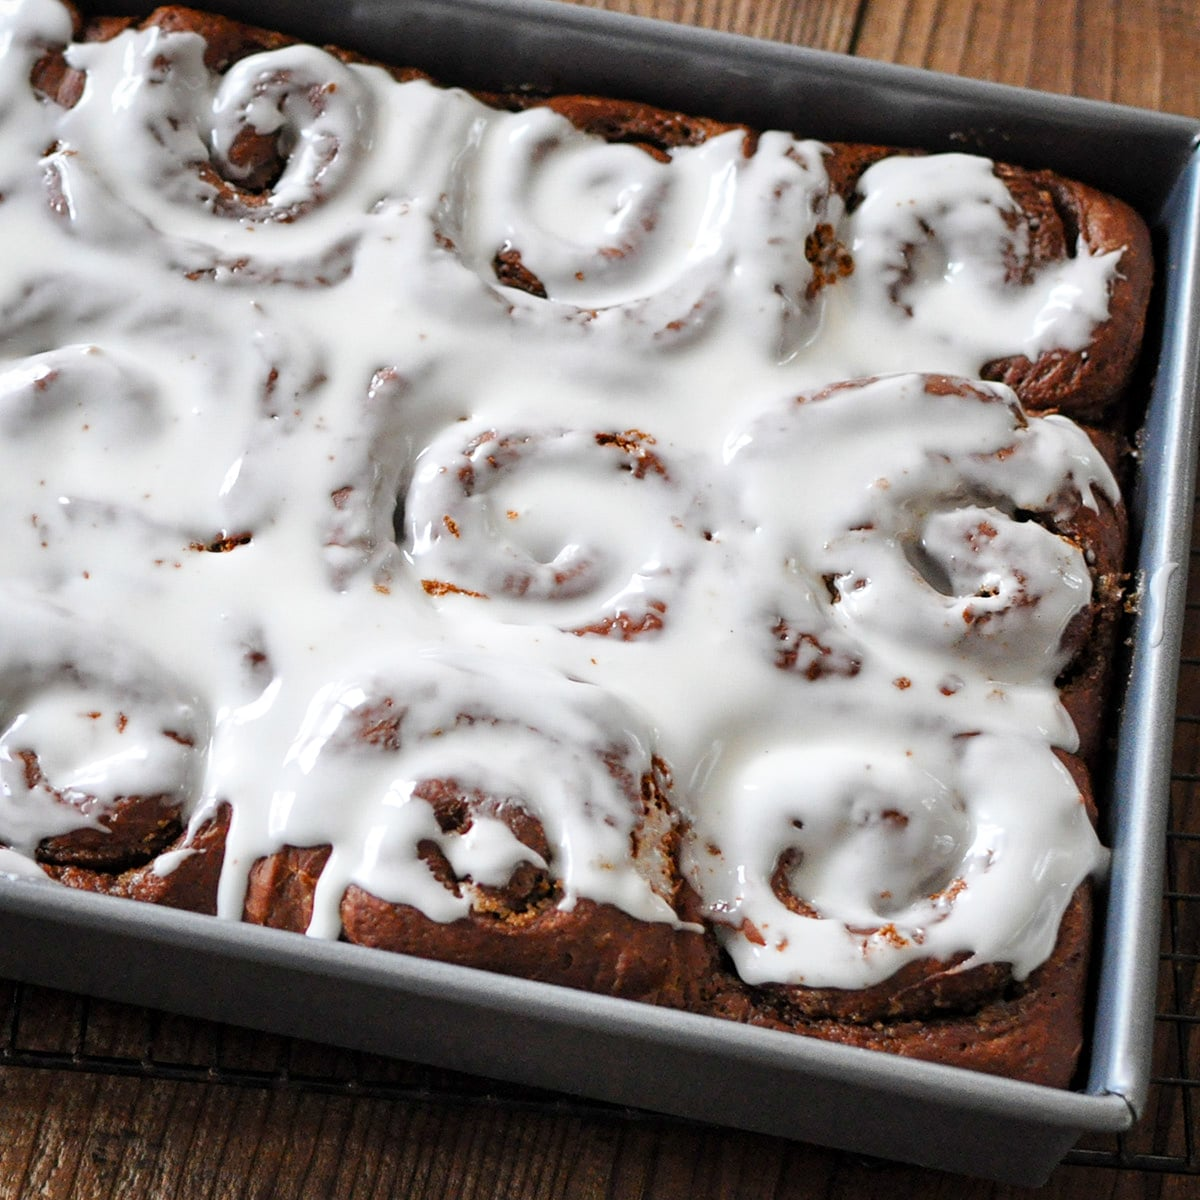 just baked cinnamon rolls covered in icing